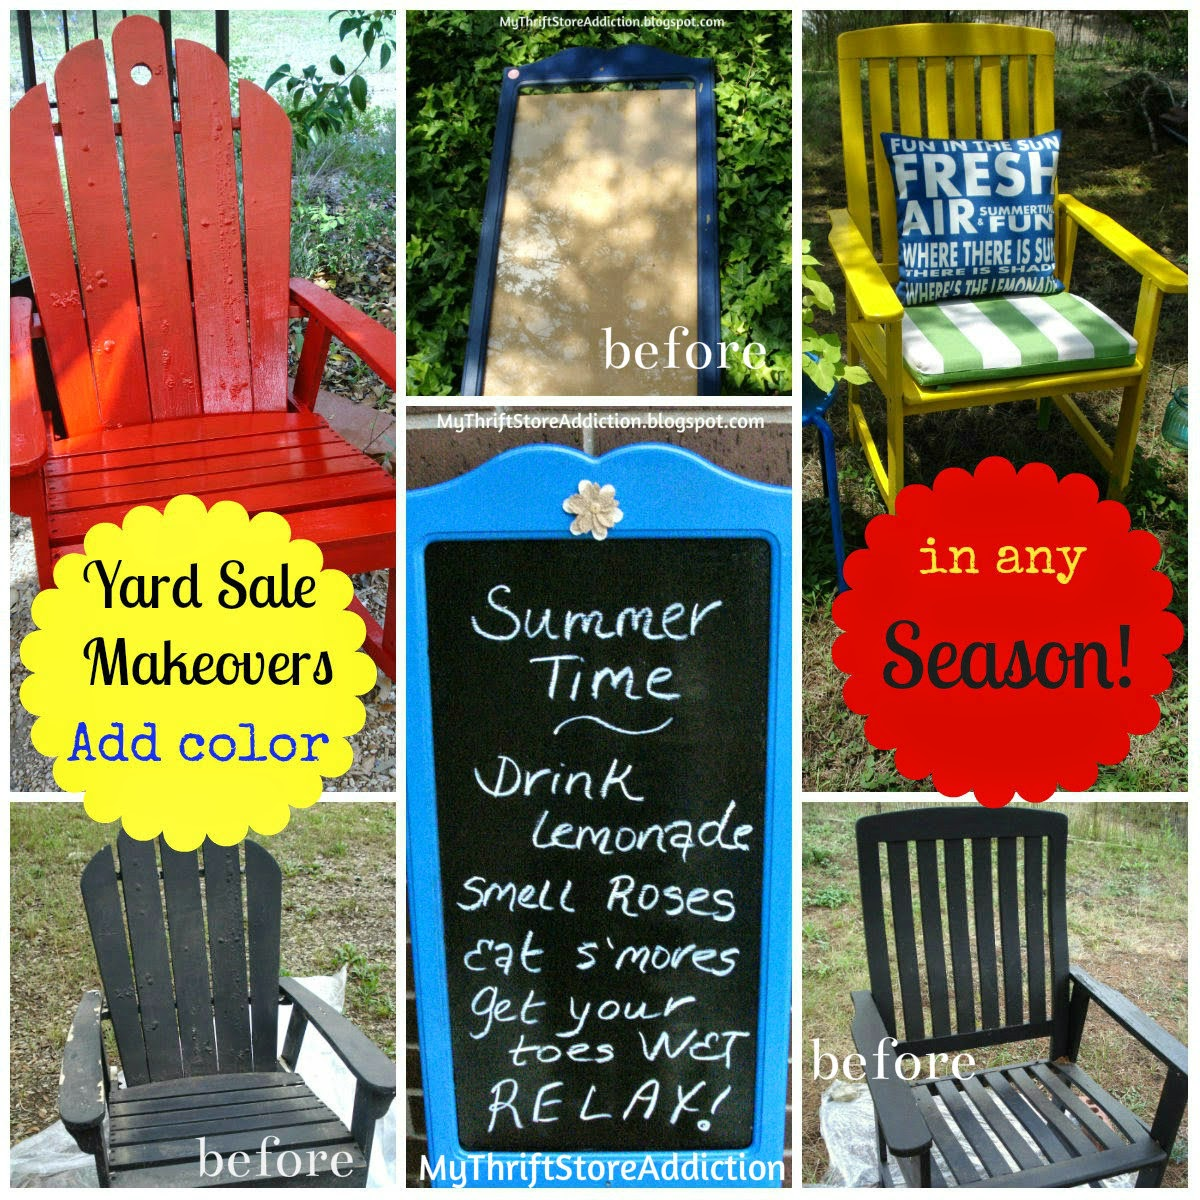 Add color with spray paint to outdoor furniture